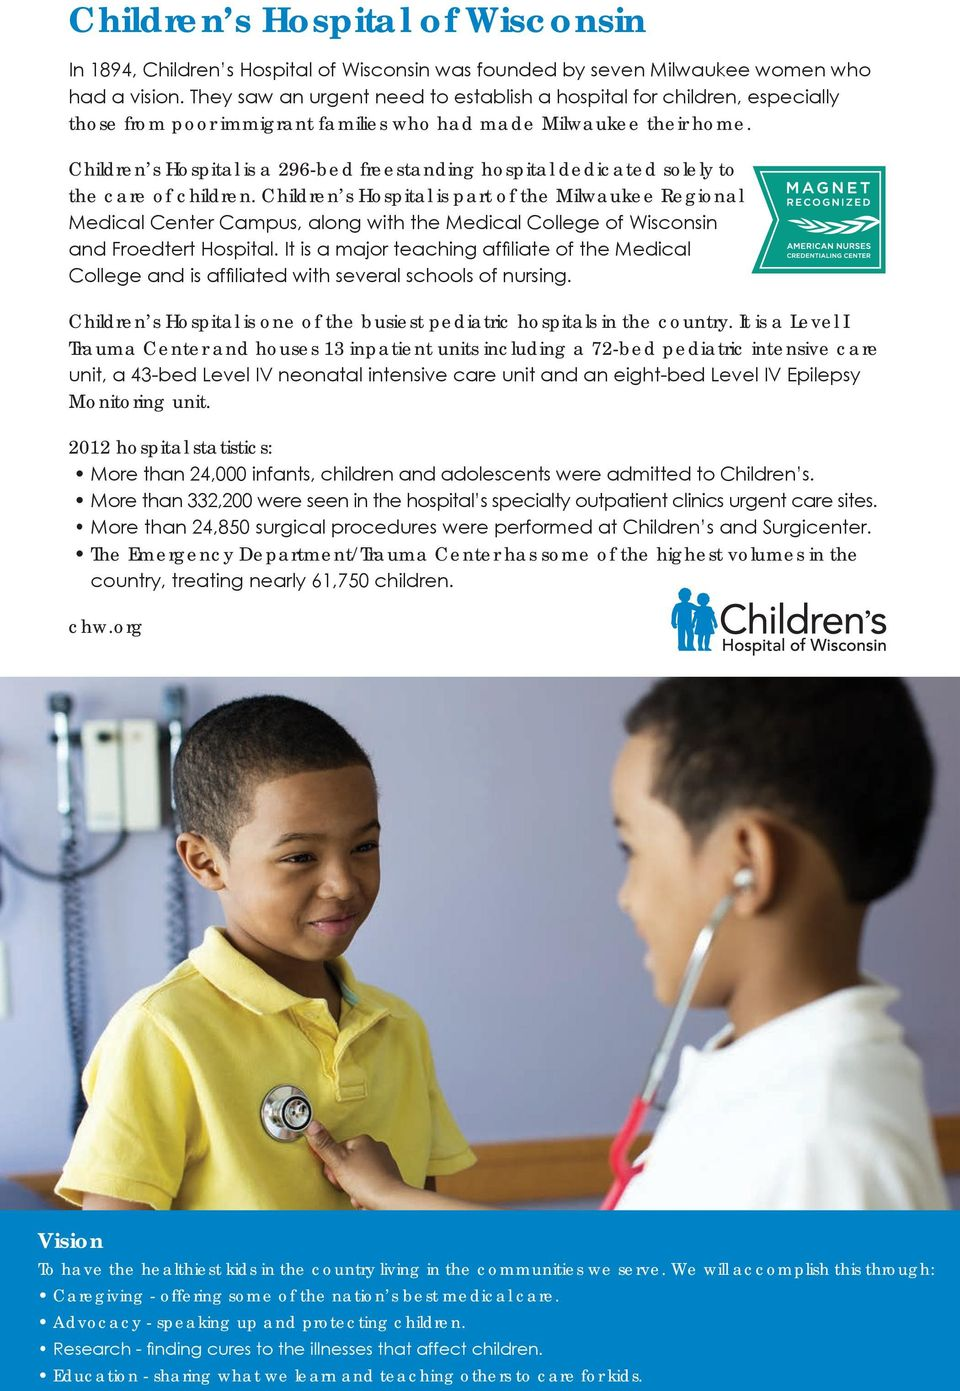 Children s Hospital is a 96-bed freestanding hospital dedicated solely to the care of children.